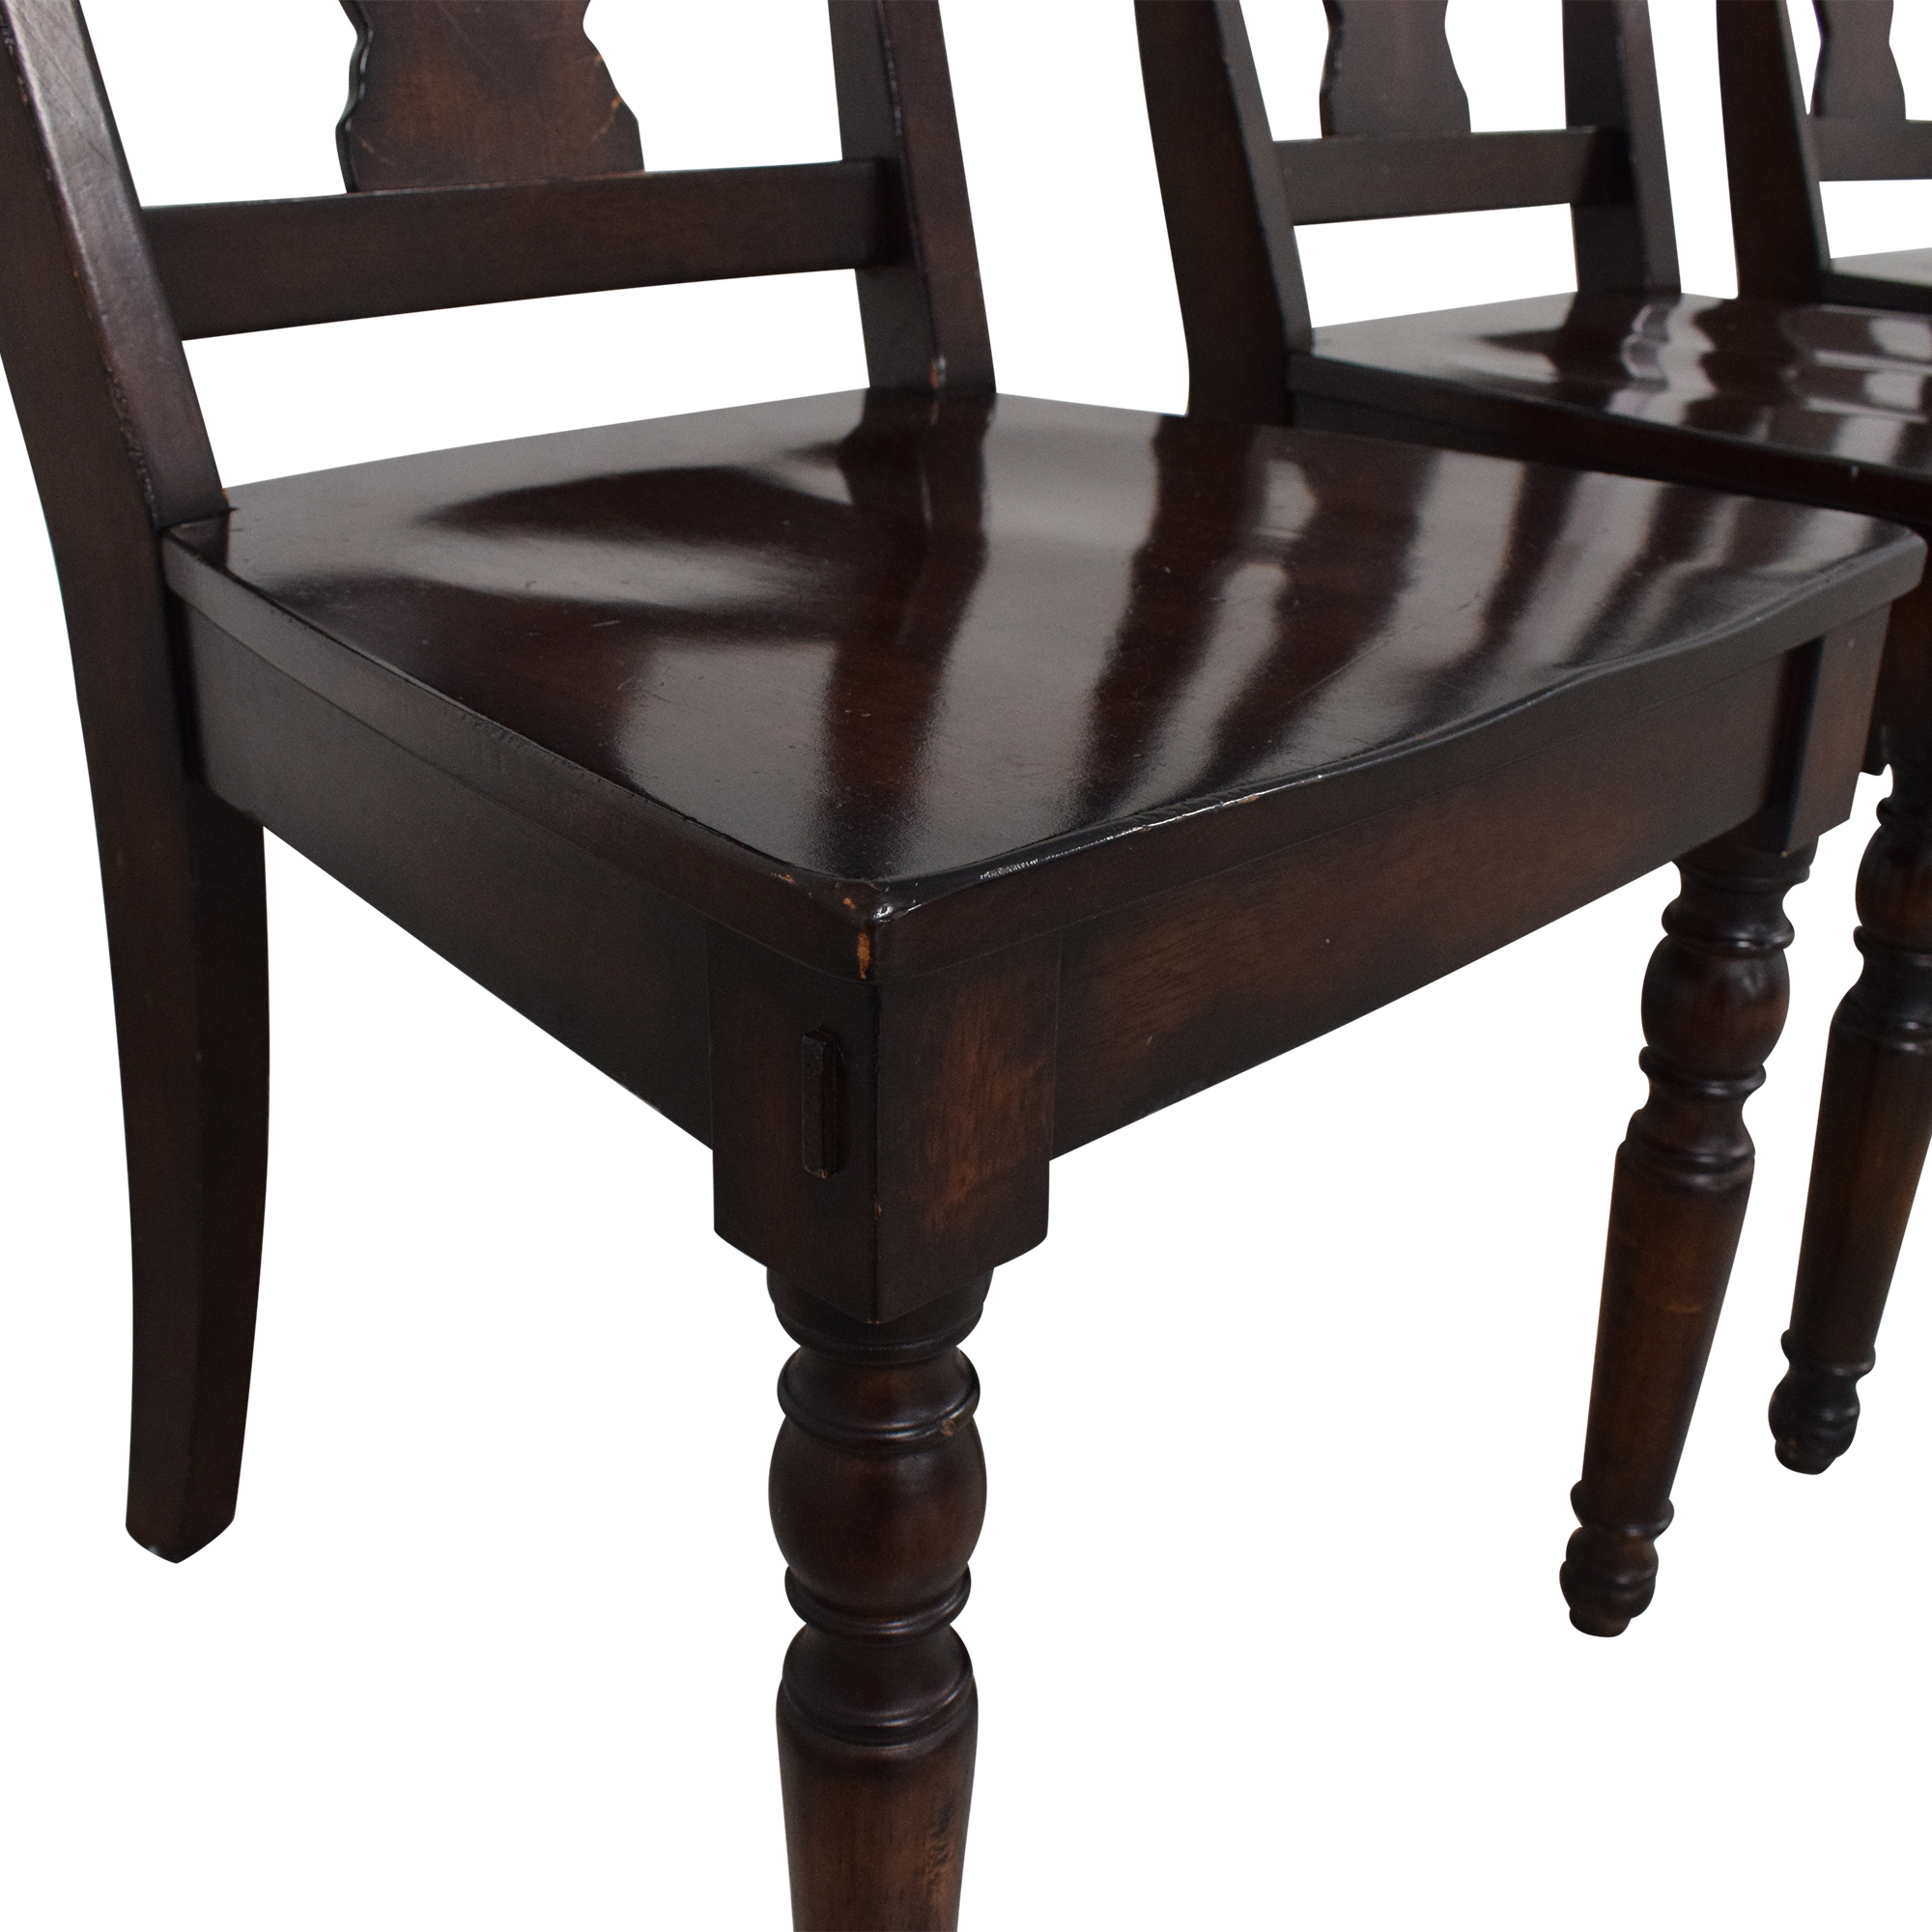 Pottery Barn Pottery Barn Fiddleback Dining Chairs dimensions